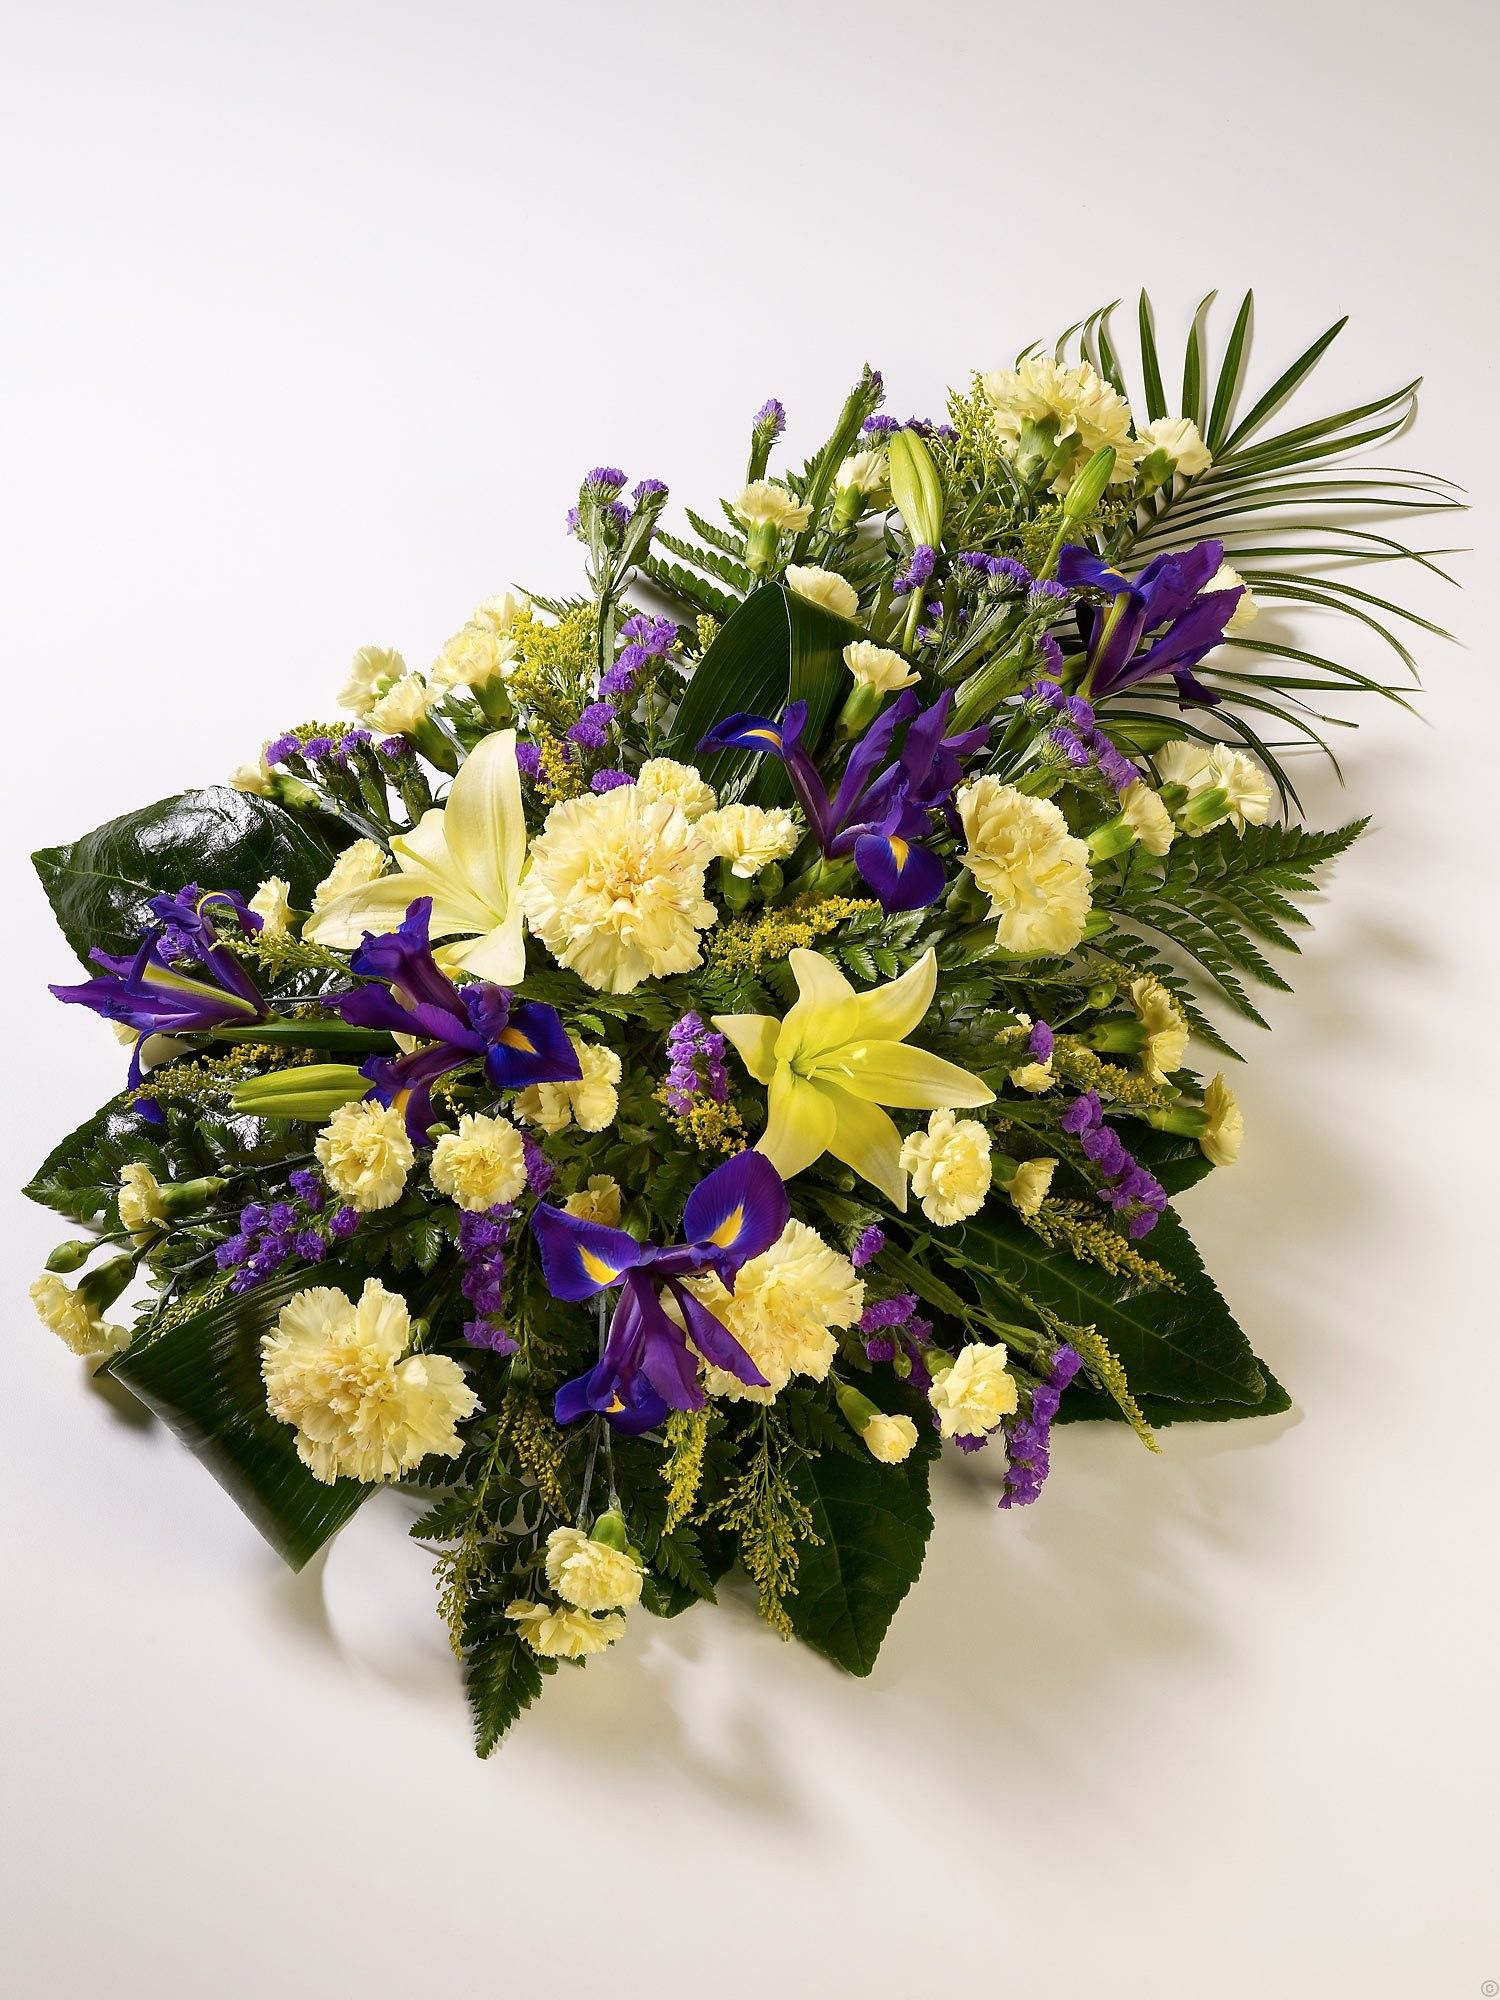 Lily iris teardrop spray funeral flowers funeral flowers lily iris teardrop spray funeral flowers dhlflorist Image collections